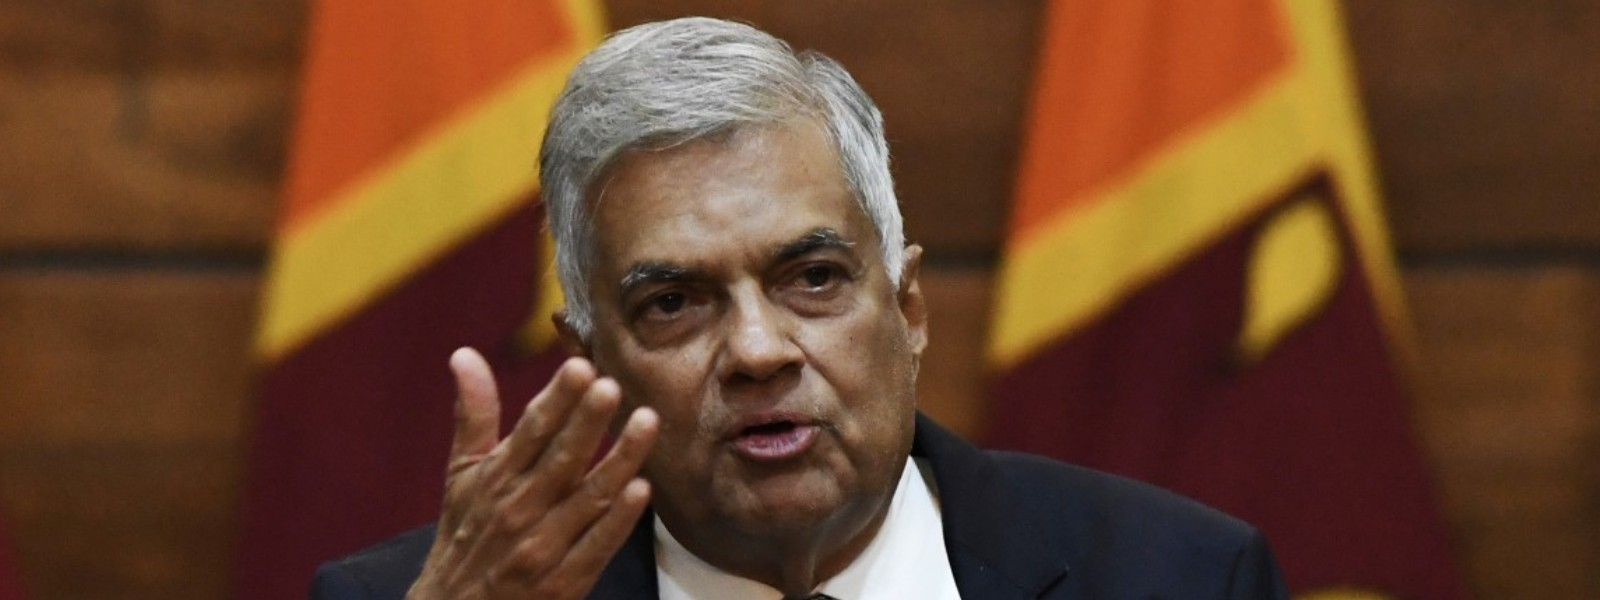 CID records statement from Ranil Wickremesinghe on Bond-Scam